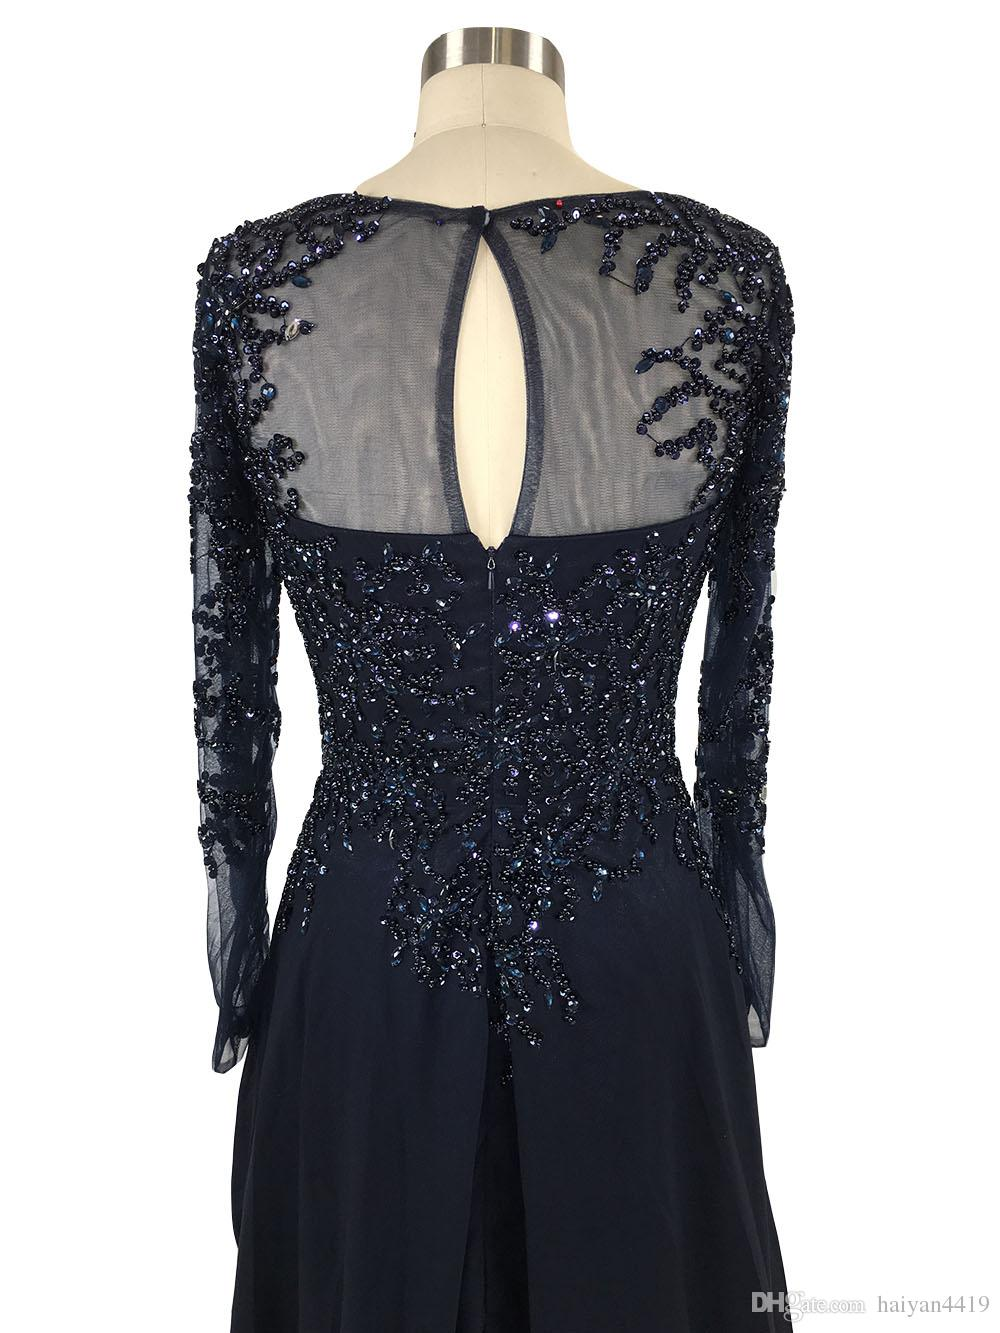 2017 Real Image Mother Of Bride Dresses Long Sleeves Lace Appliques Crystal Beads Floor Length Navy Blue Chiffon Bride Wedding Guest Dreses